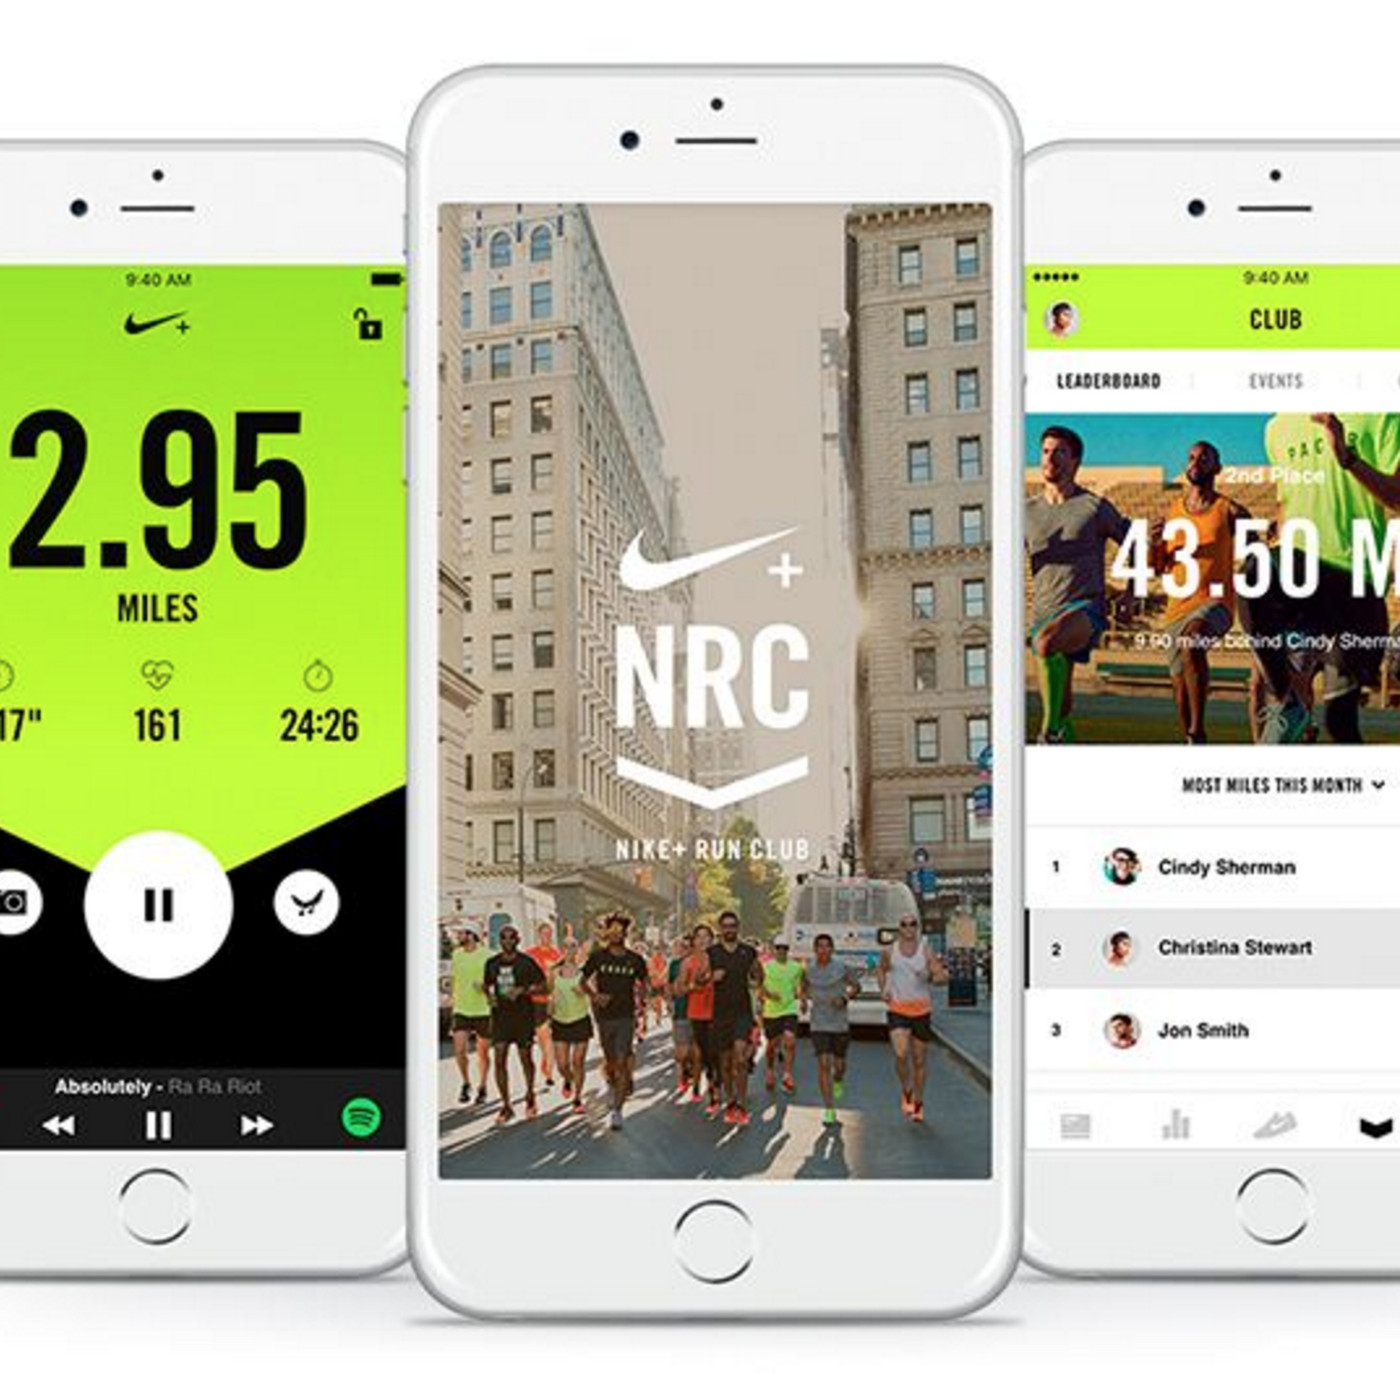 bed37eb129d34 Nike redesigned its popular running app, and users are very angry ...